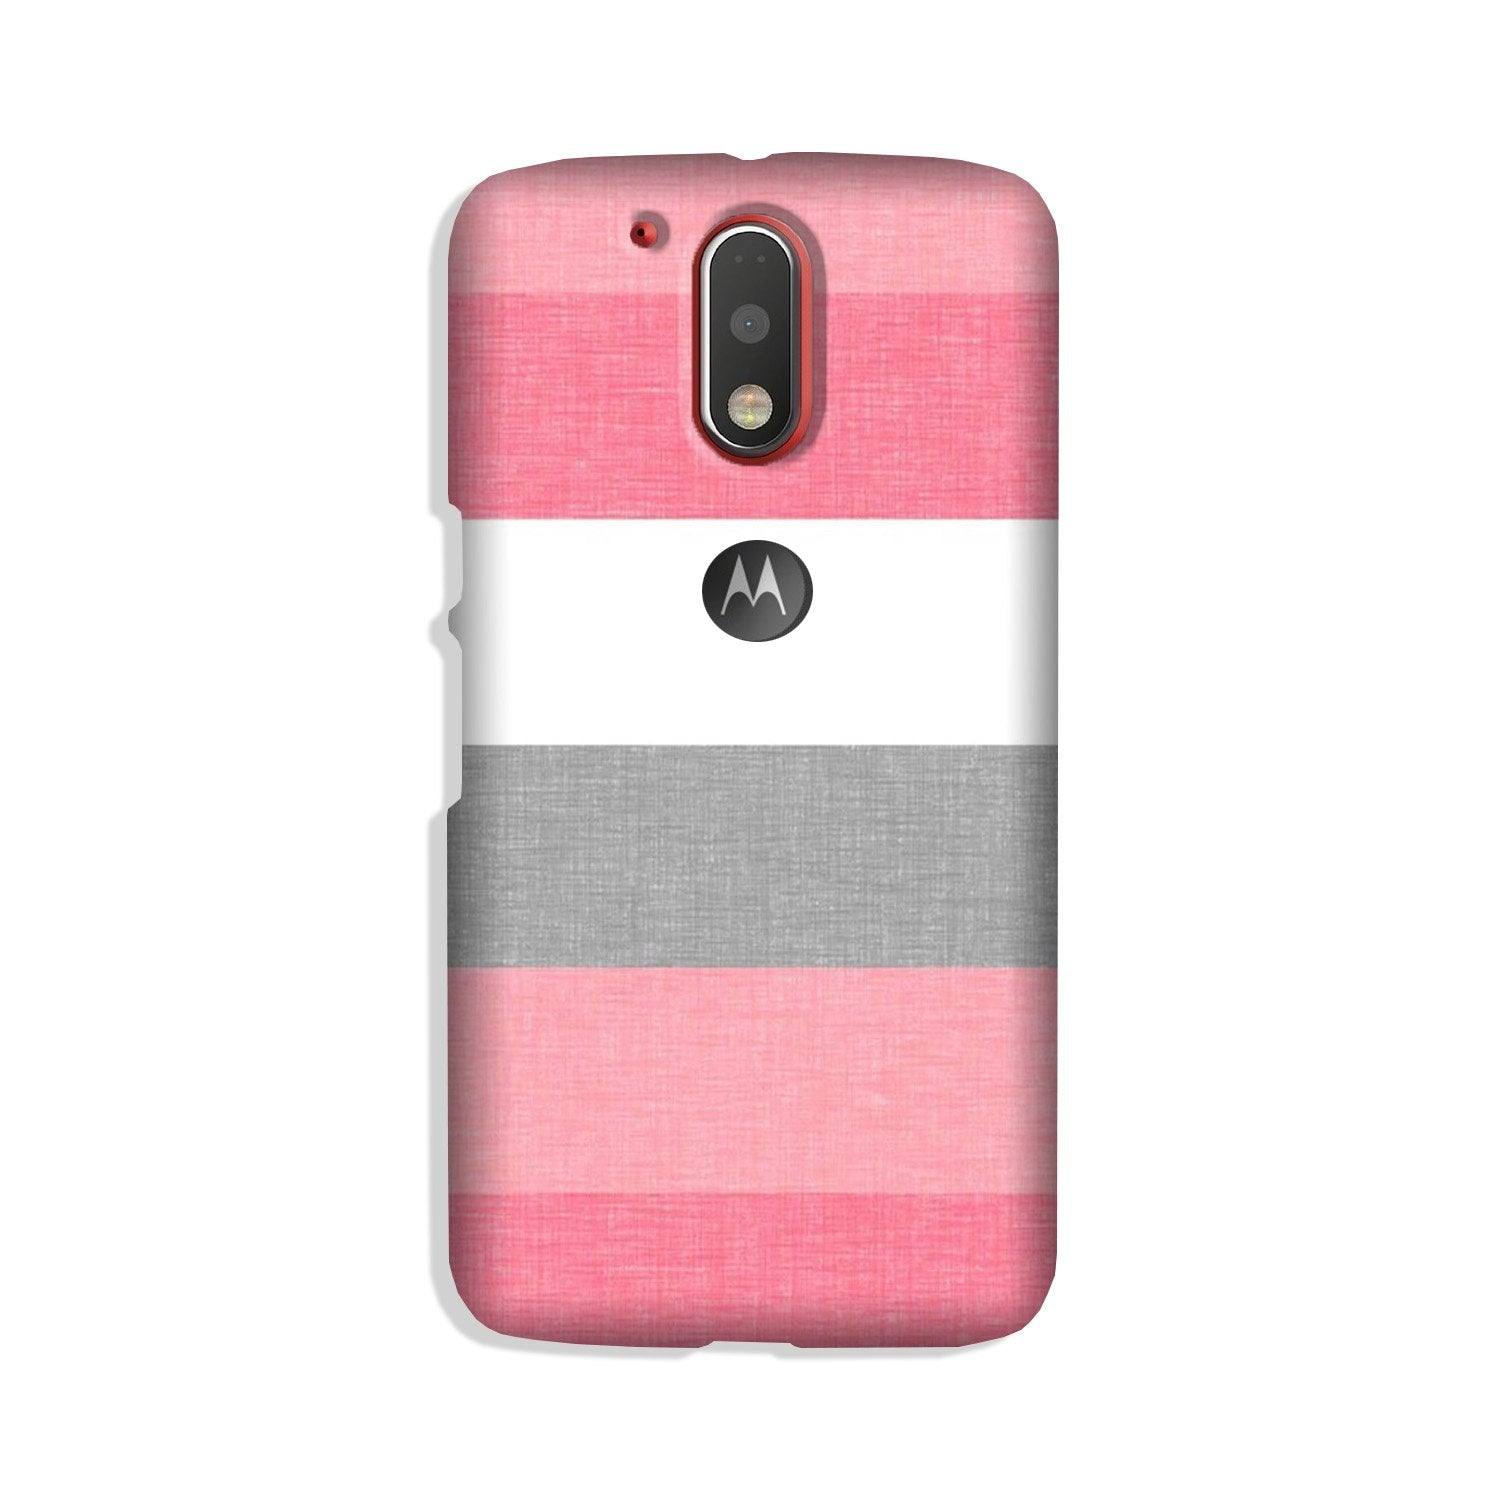 Pink white pattern Case for Moto G4 Plus